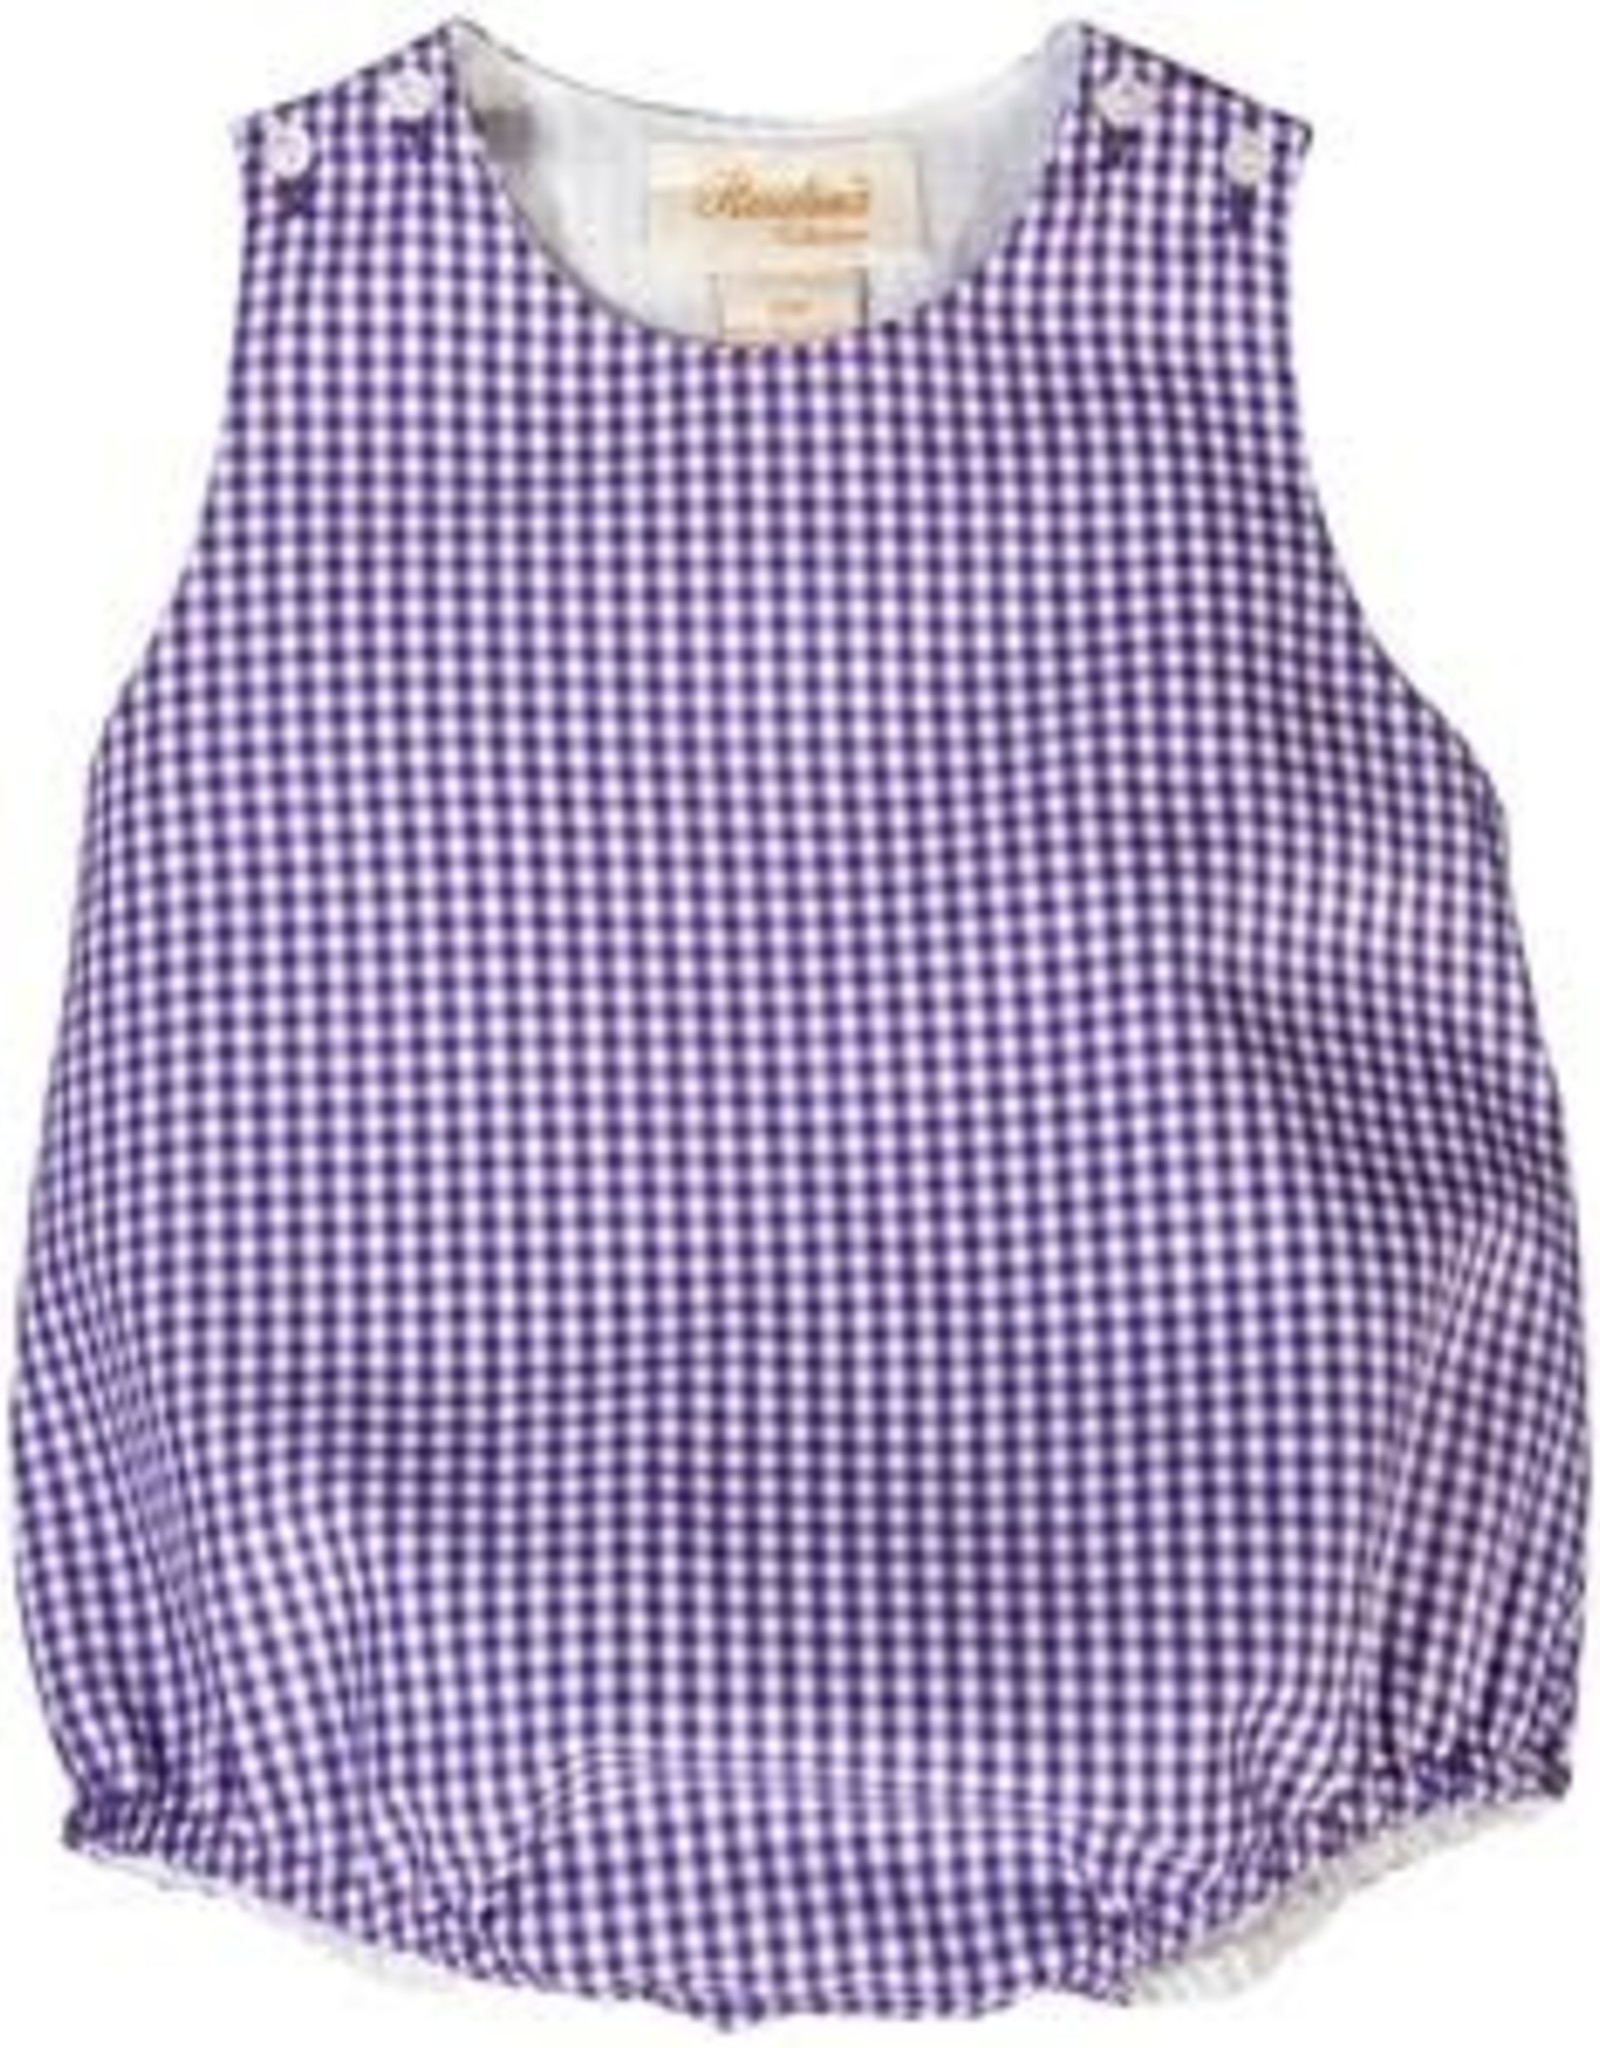 Rosalina Purple Unisex Gingham Bubble